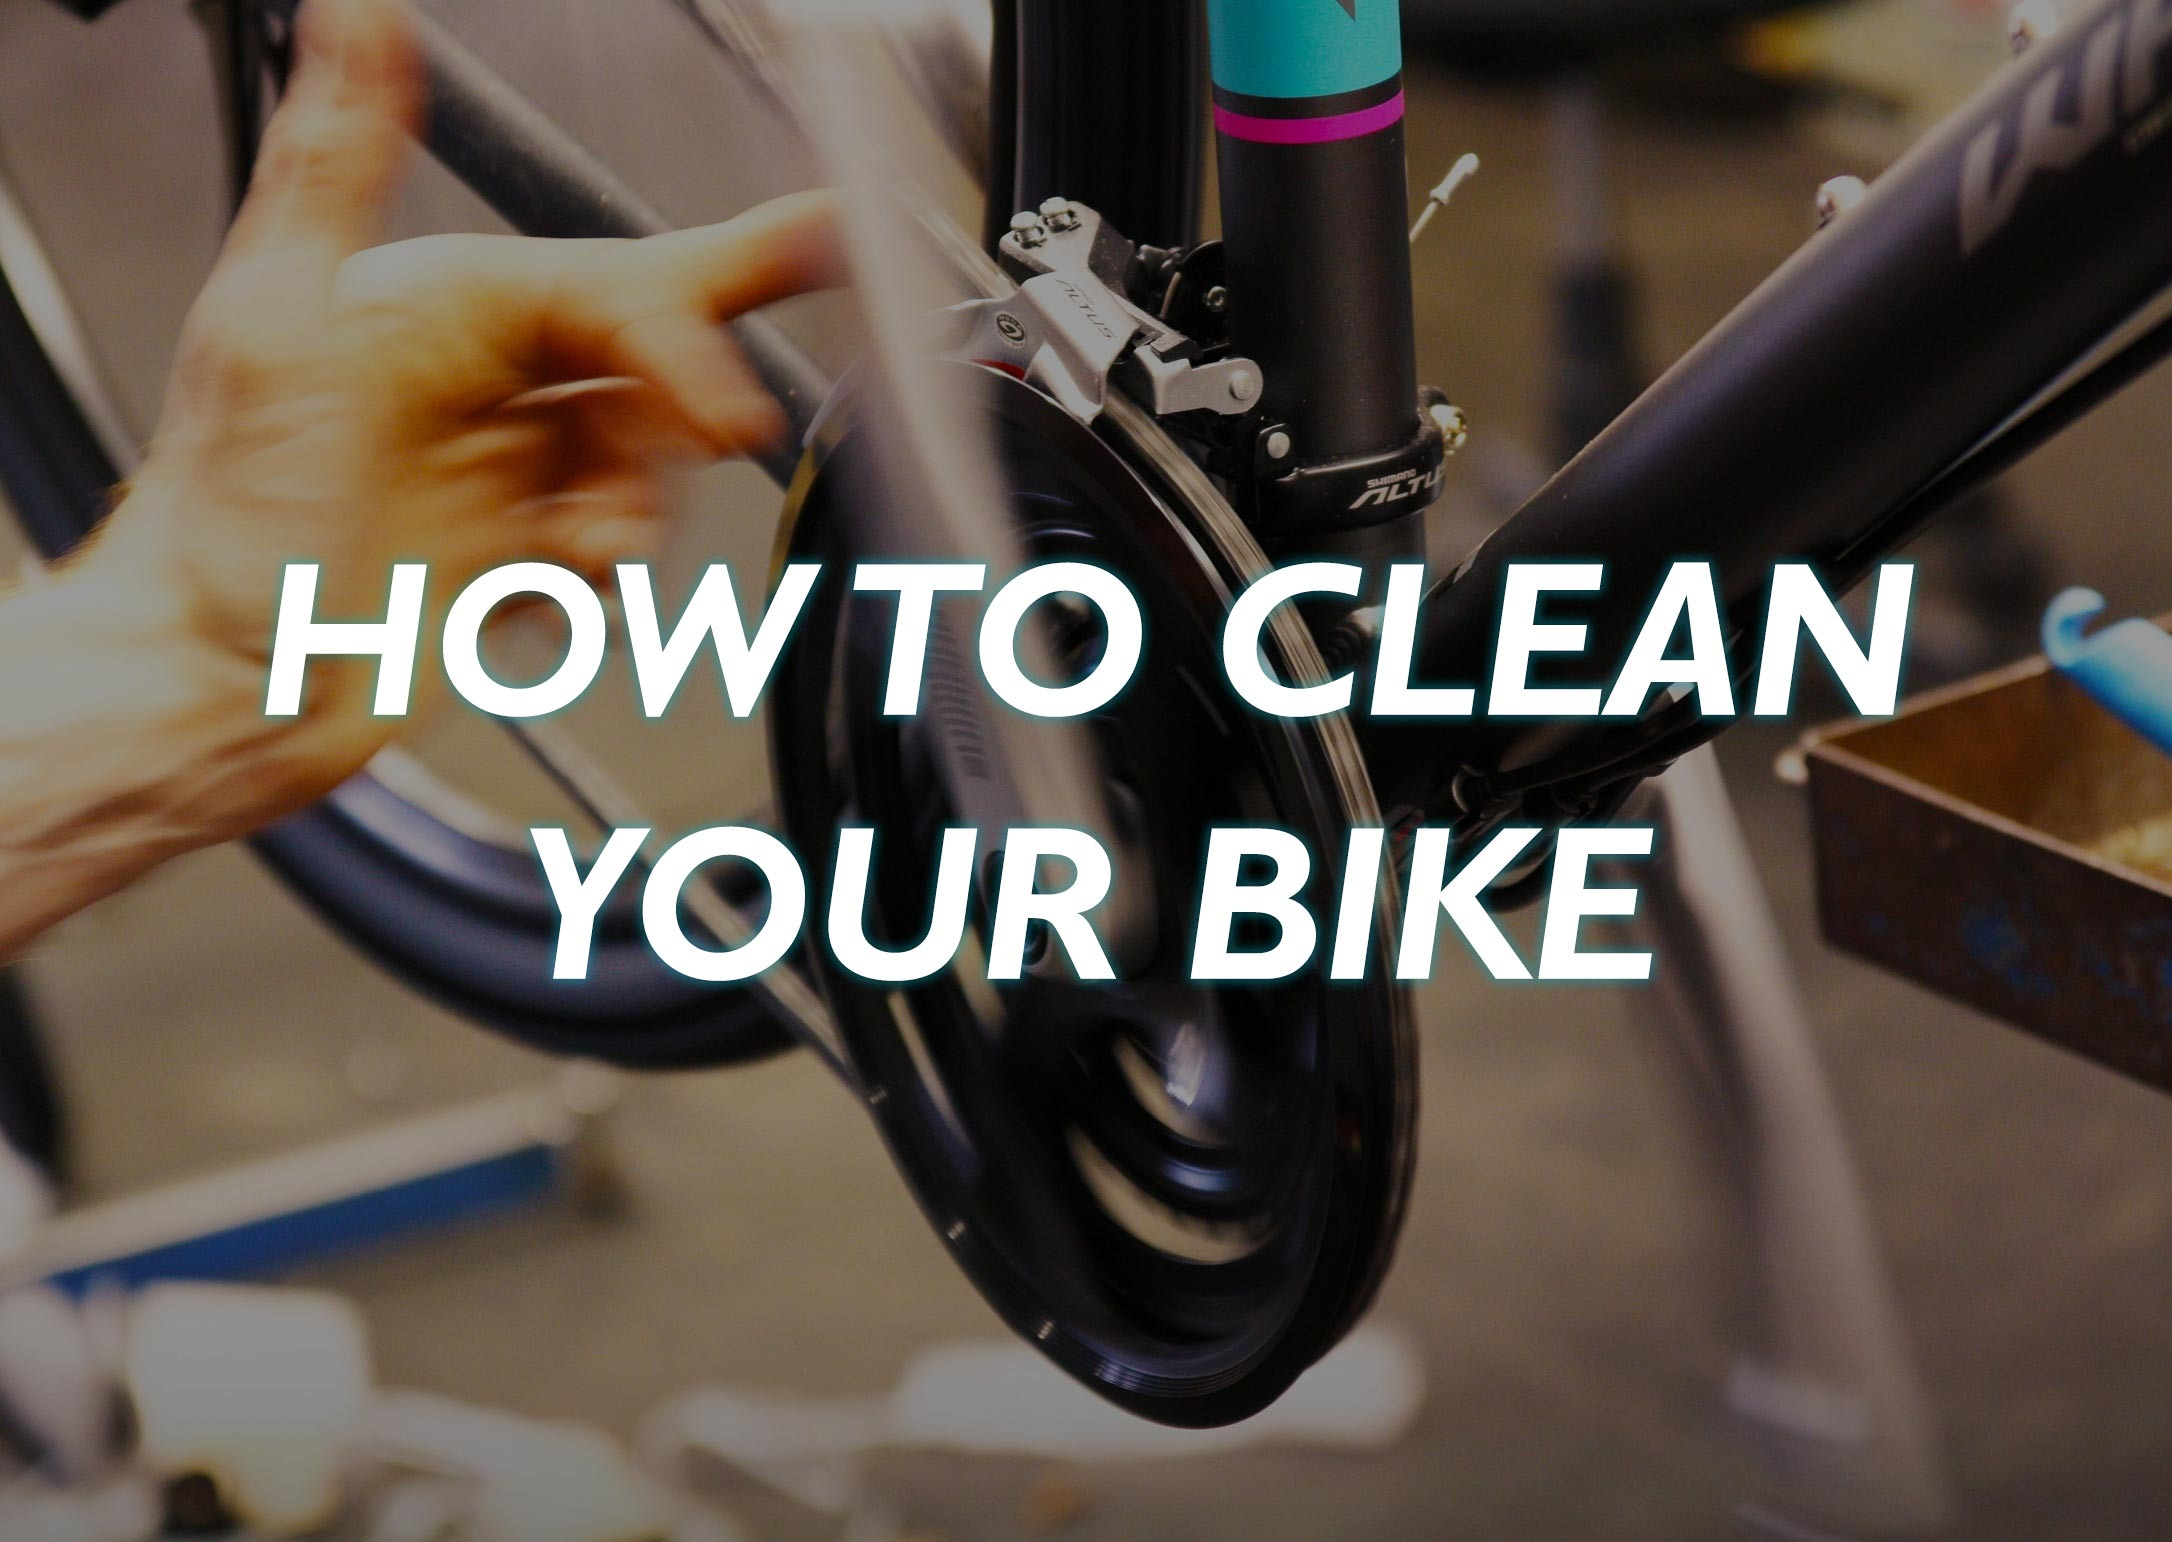 how-to-clean-your-bike-tile